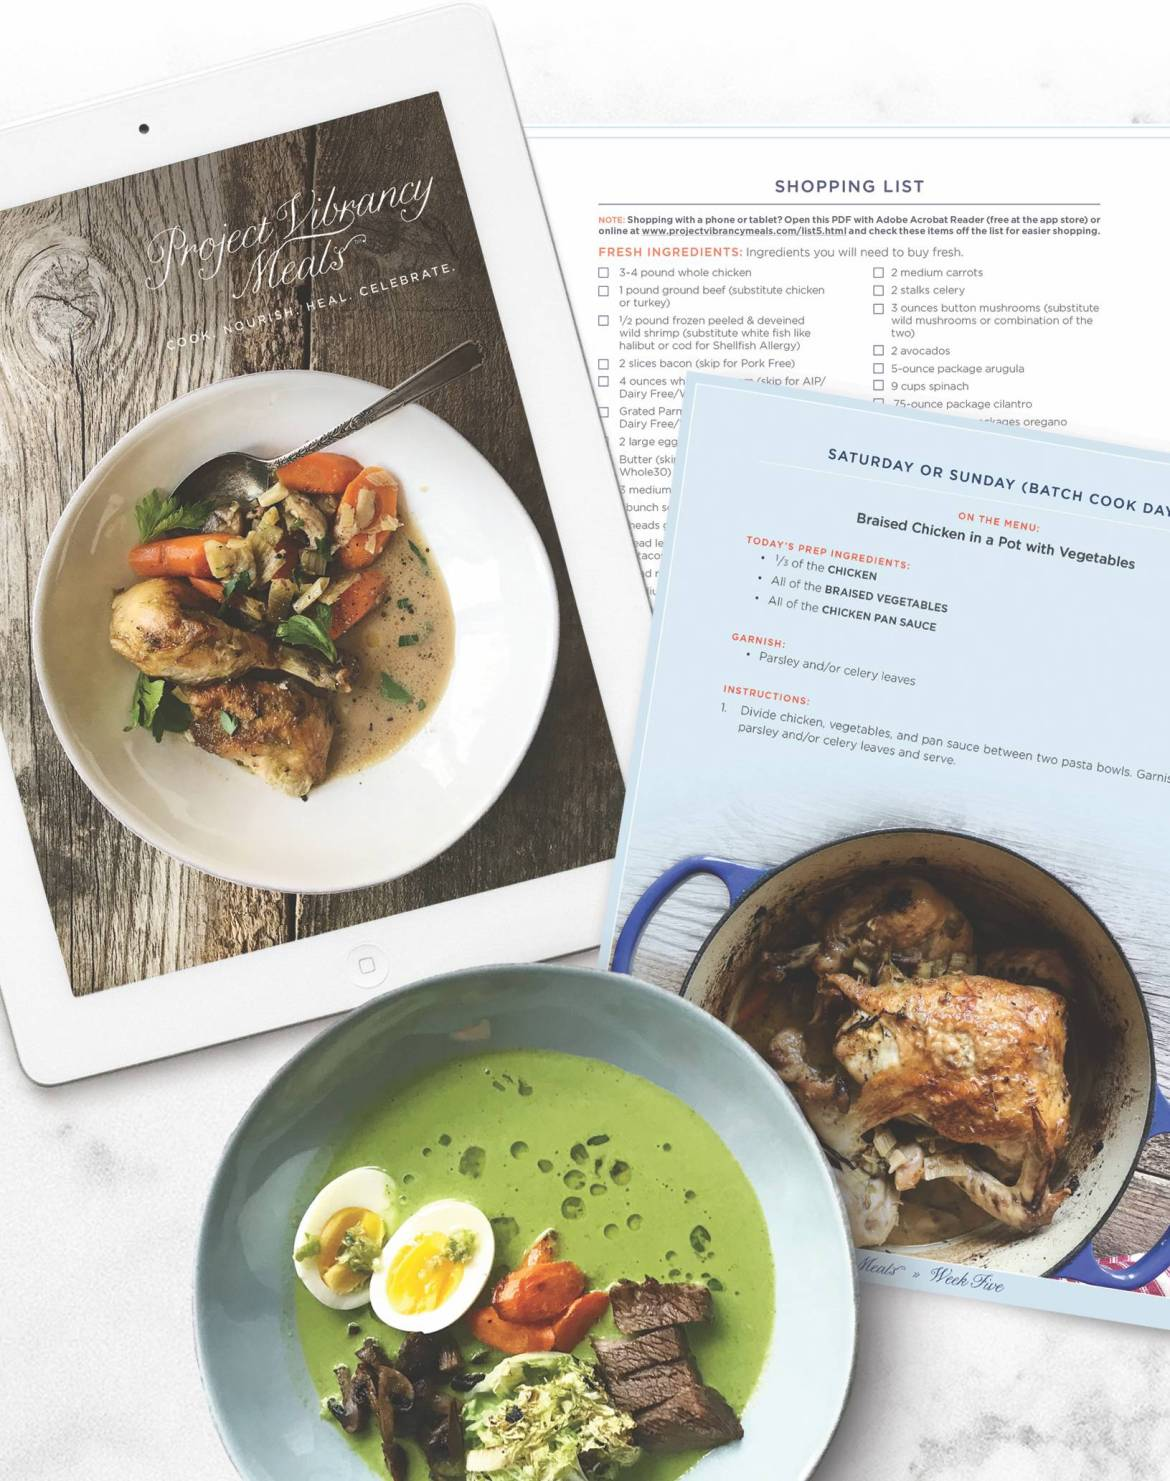 Meal planning & batch cooking can simplify mealtimes